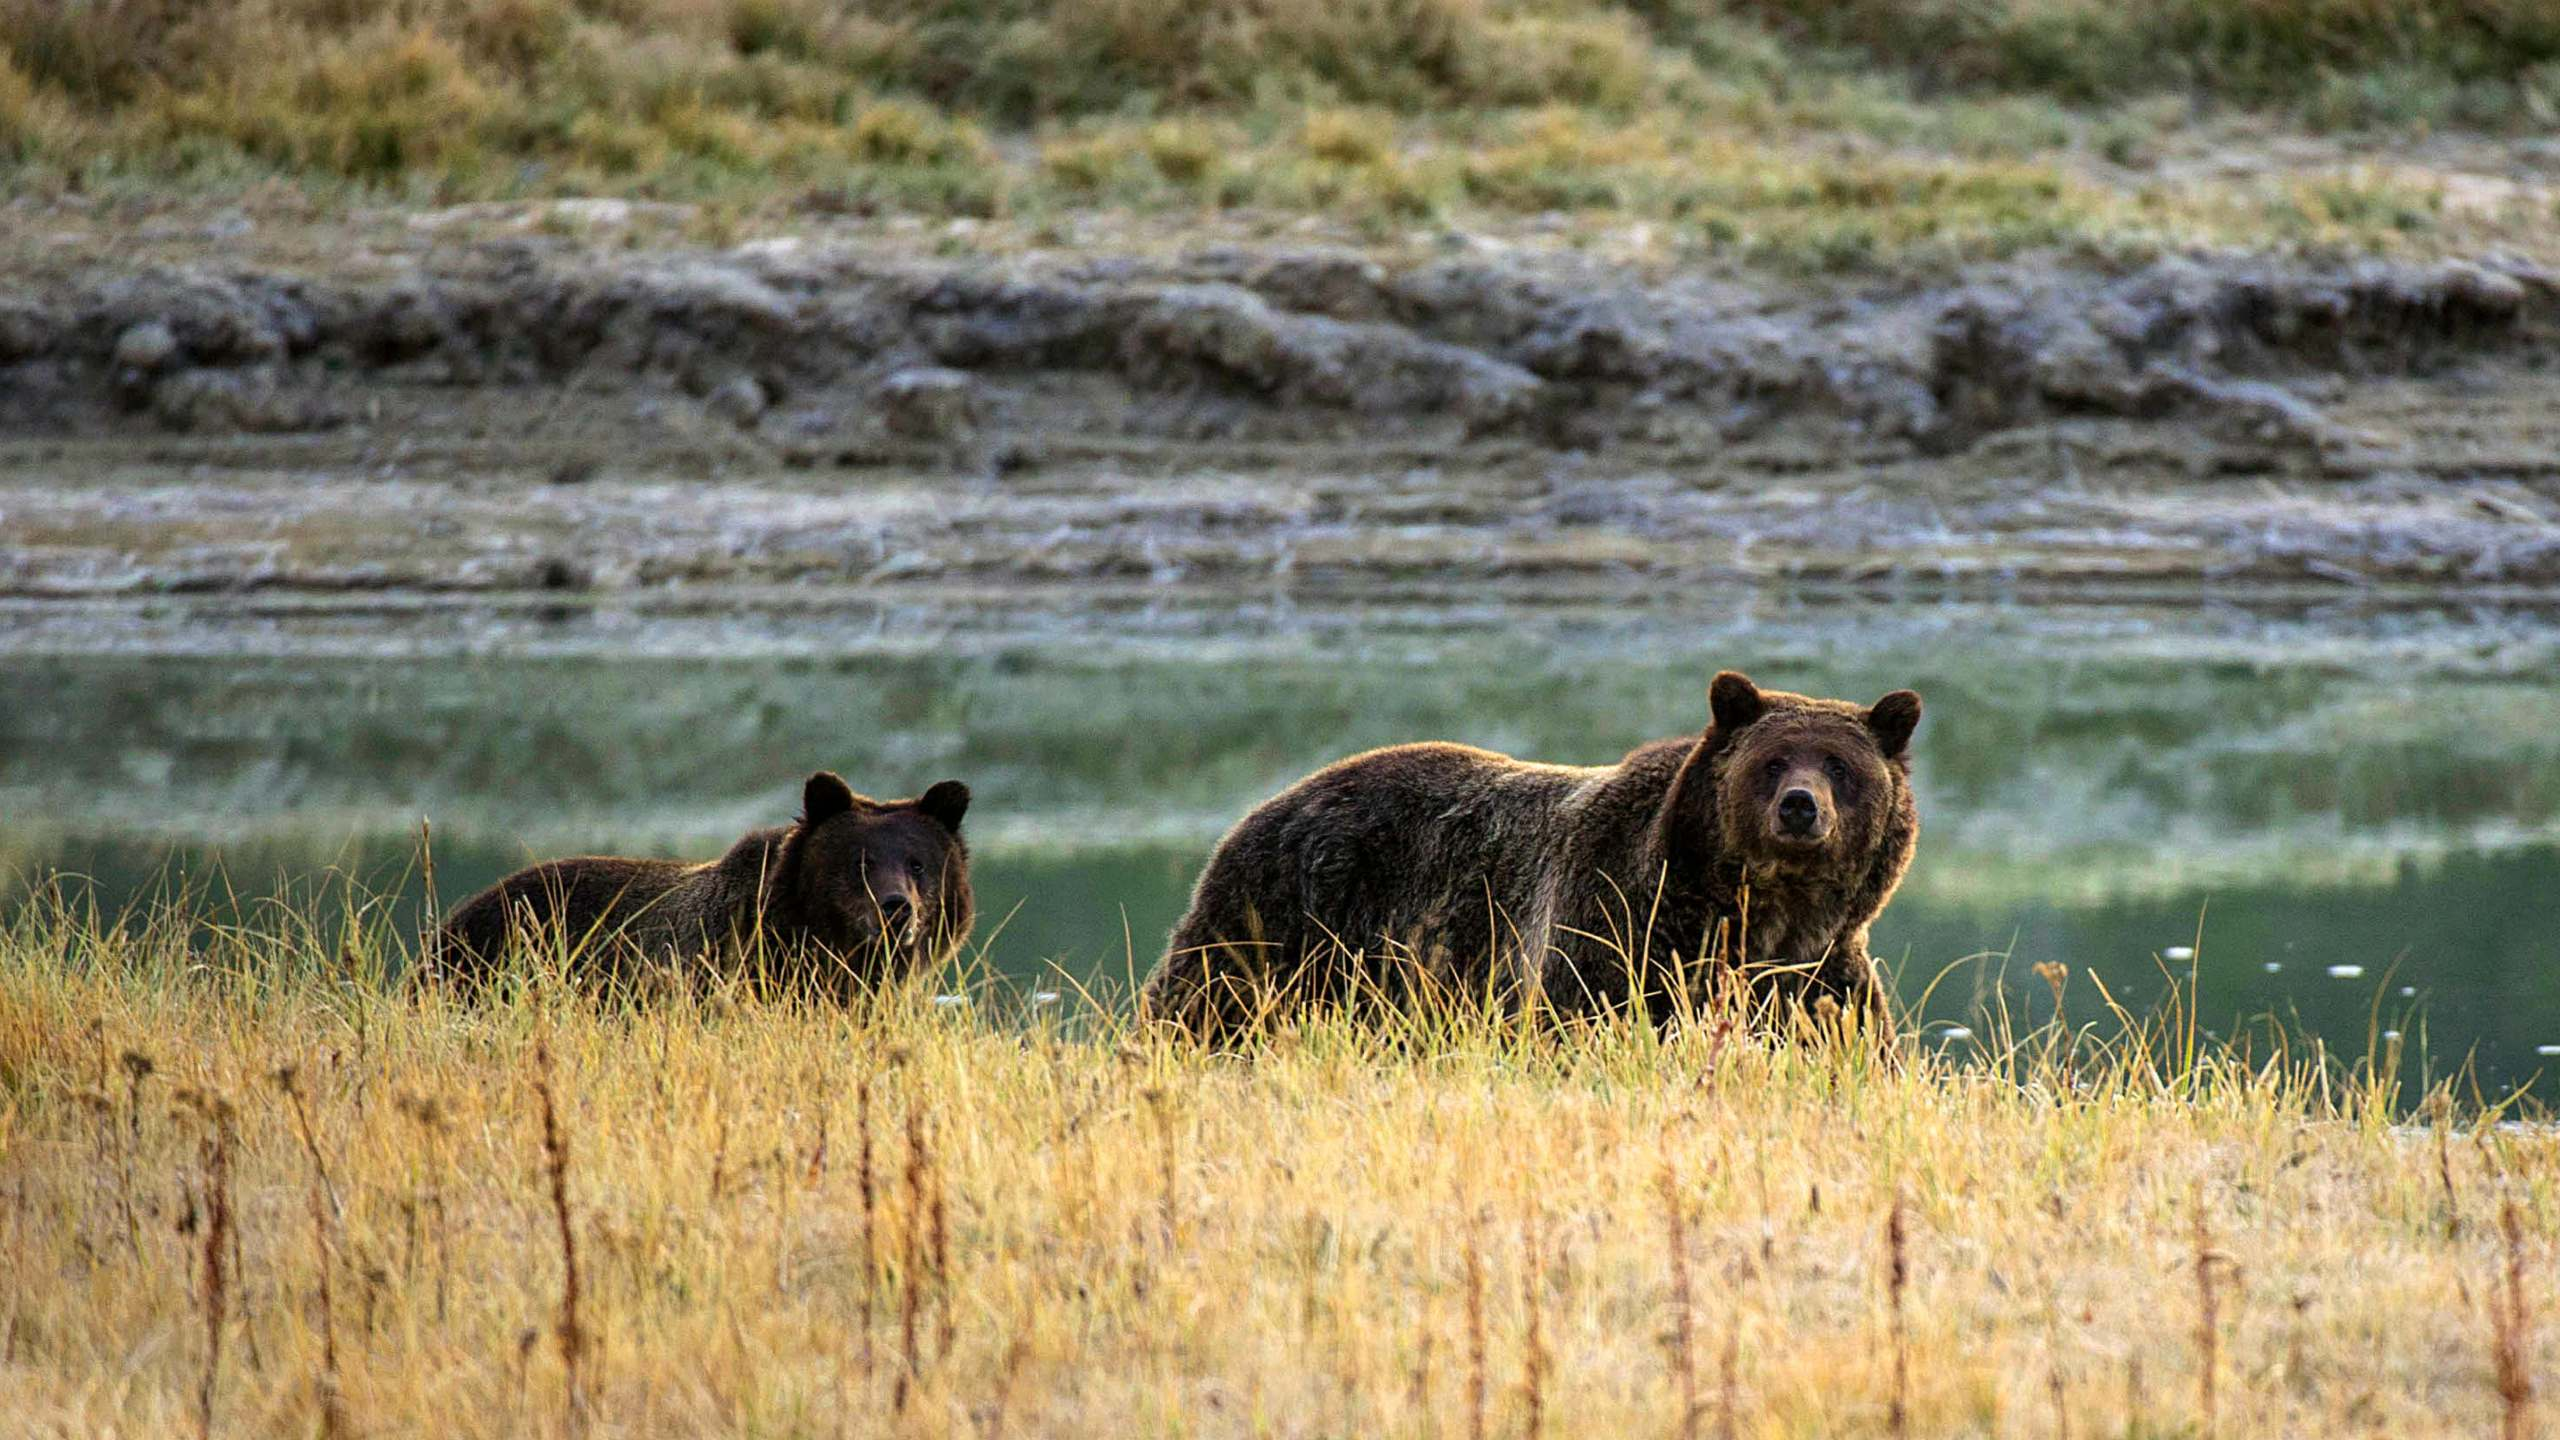 A grizzly bear mother and her cub walk near Pelican Creek on Oct. 8, 2012, in the Yellowstone National Park. (Credit: KAREN BLEIER/AFP/GettyImage)